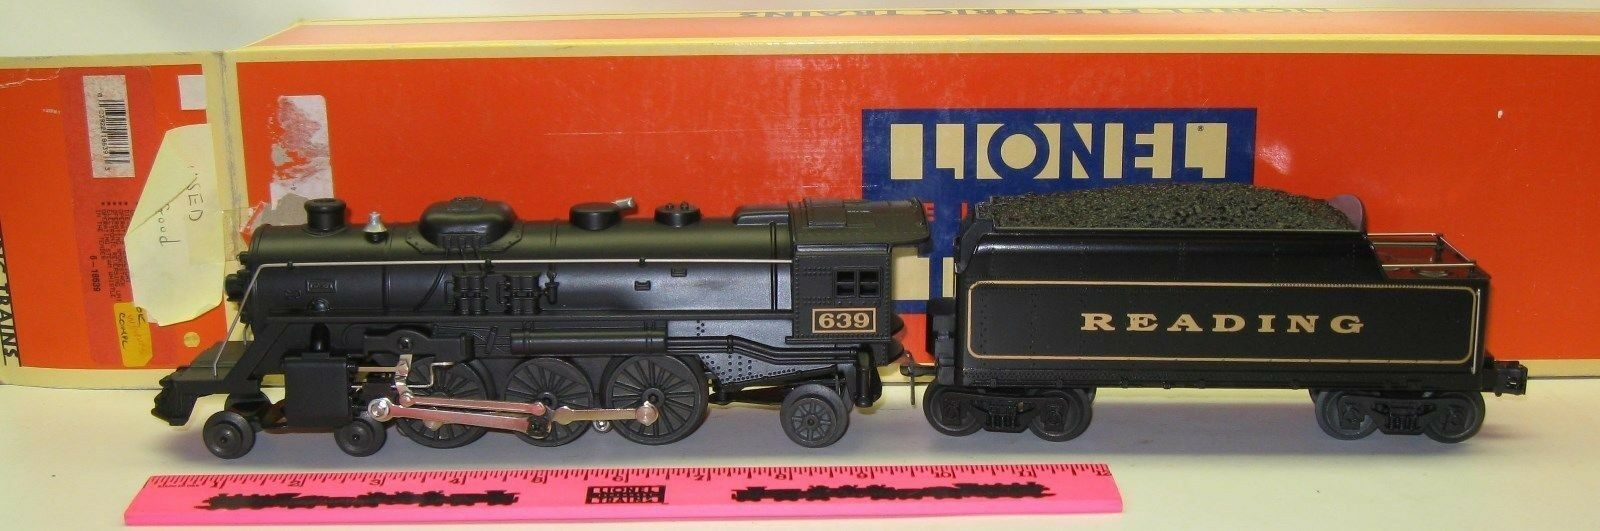 Lionel 6-18639 Reading 4-6-2 Steam Locomotive and Tender